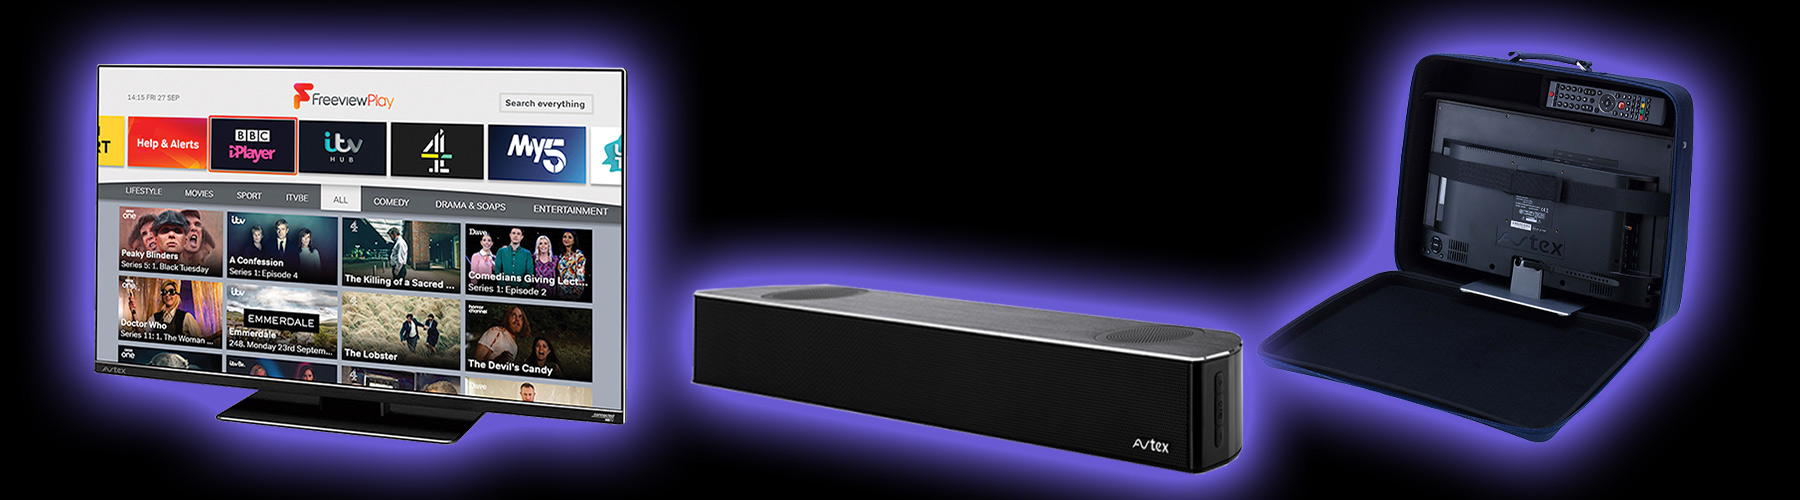 Avtex TVs with Free Case and Discount Sound Bar Offer